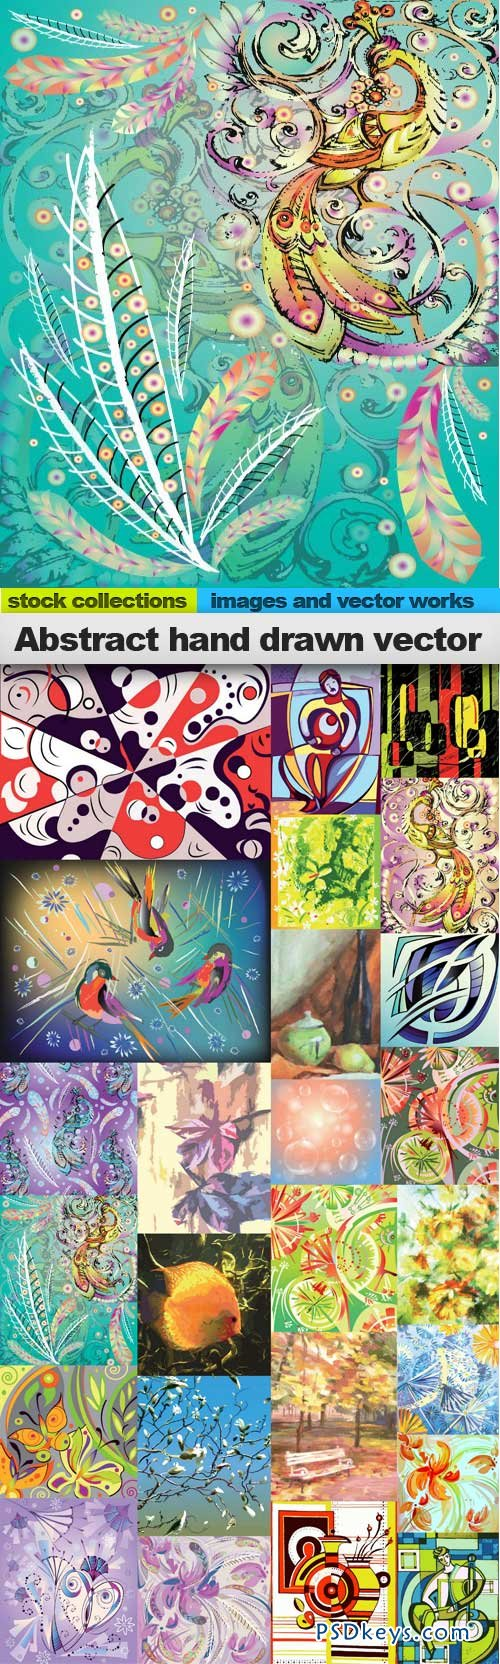 Abstract hand drawn vectors 25xEPS